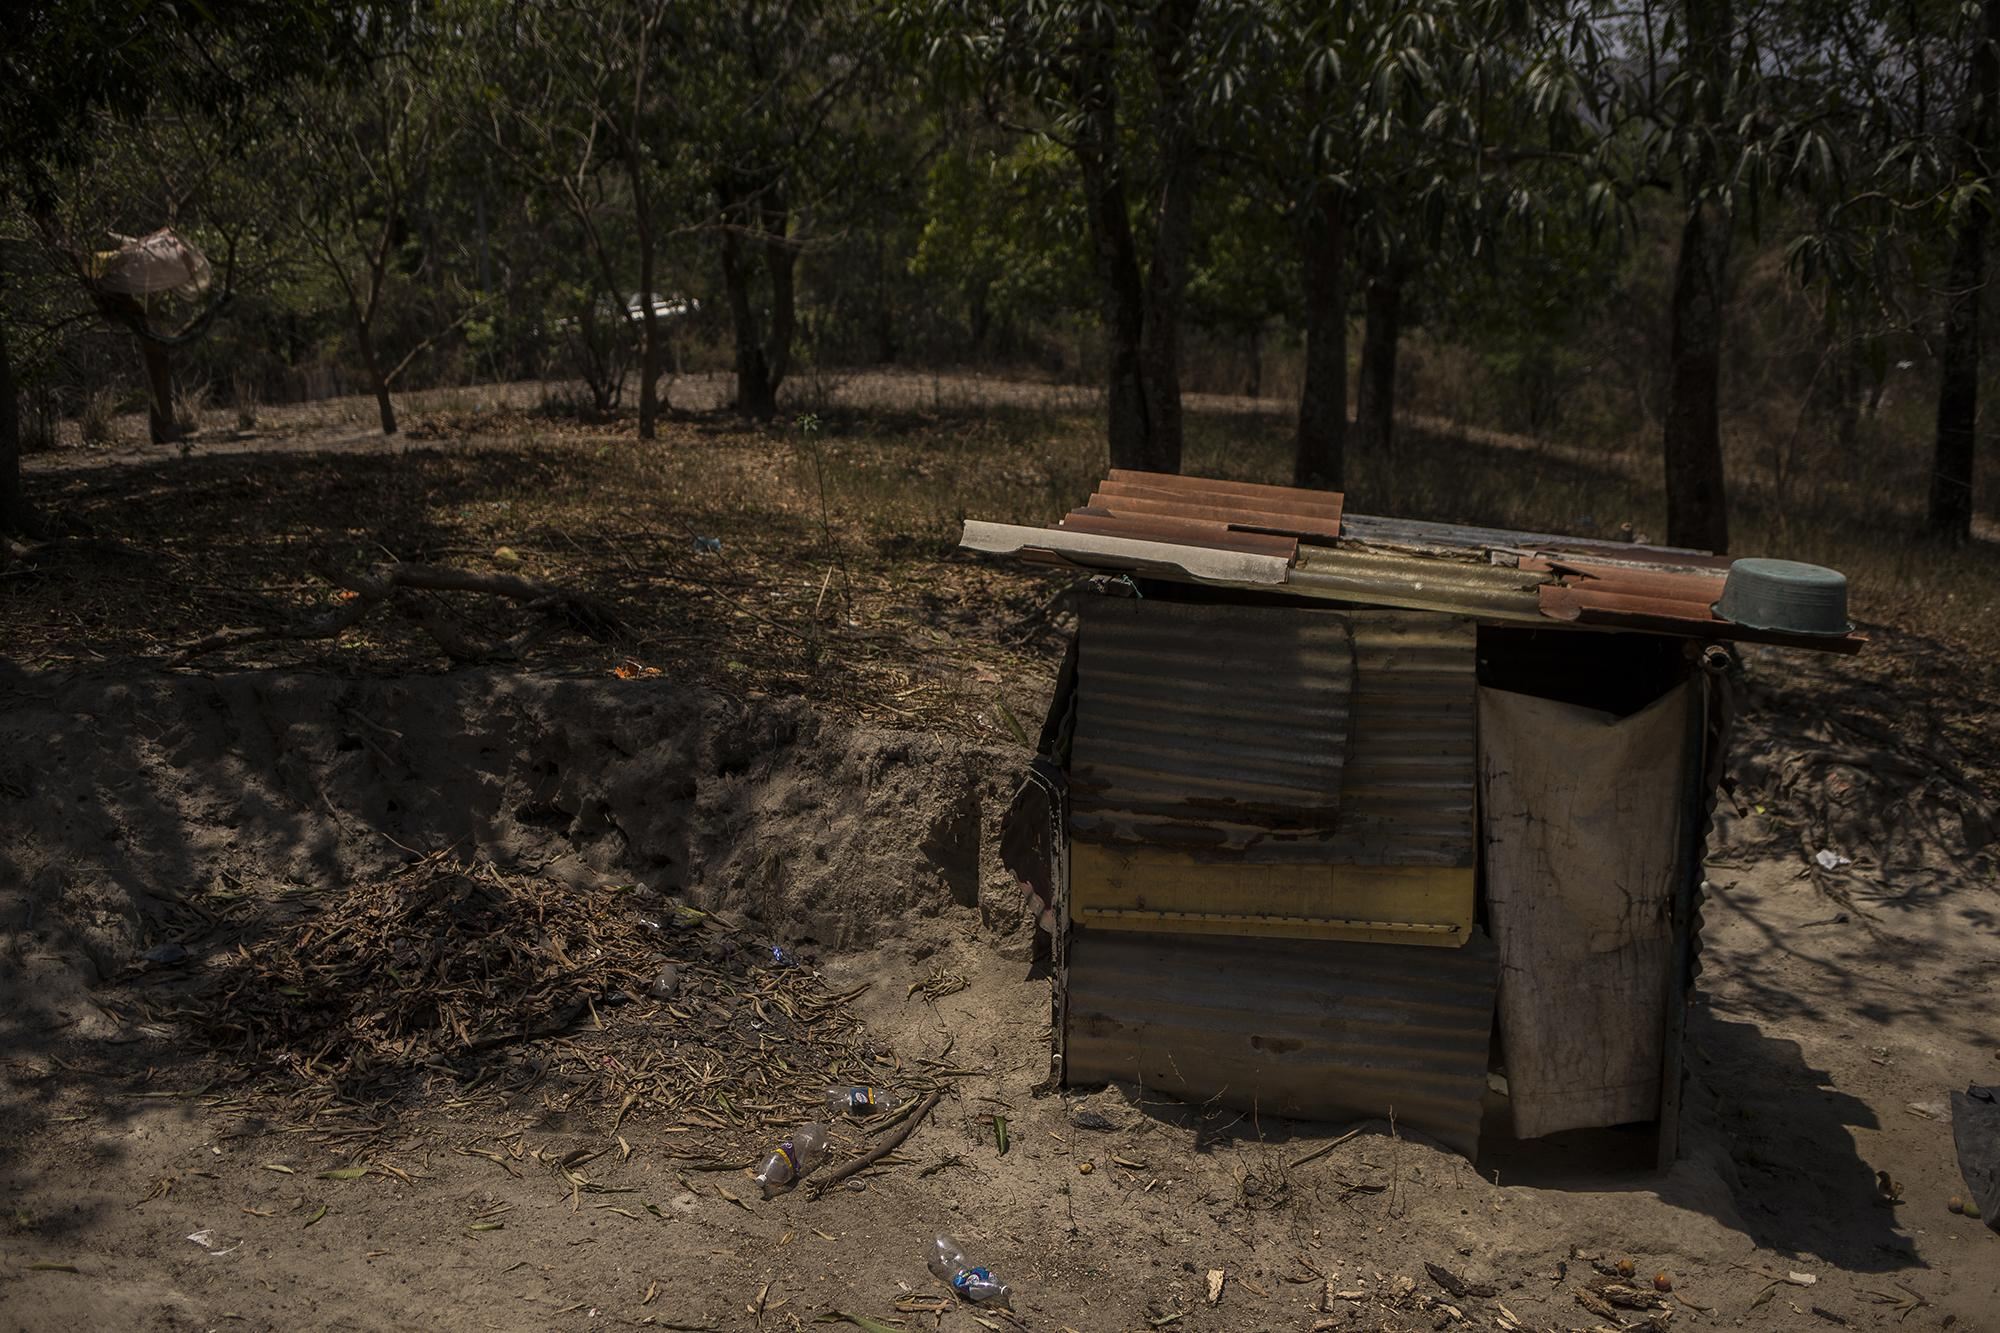 Daysi Quintanilla's home. Daysi, her five children and her granddaughter live in this small lot. Photo by Victor Peña.